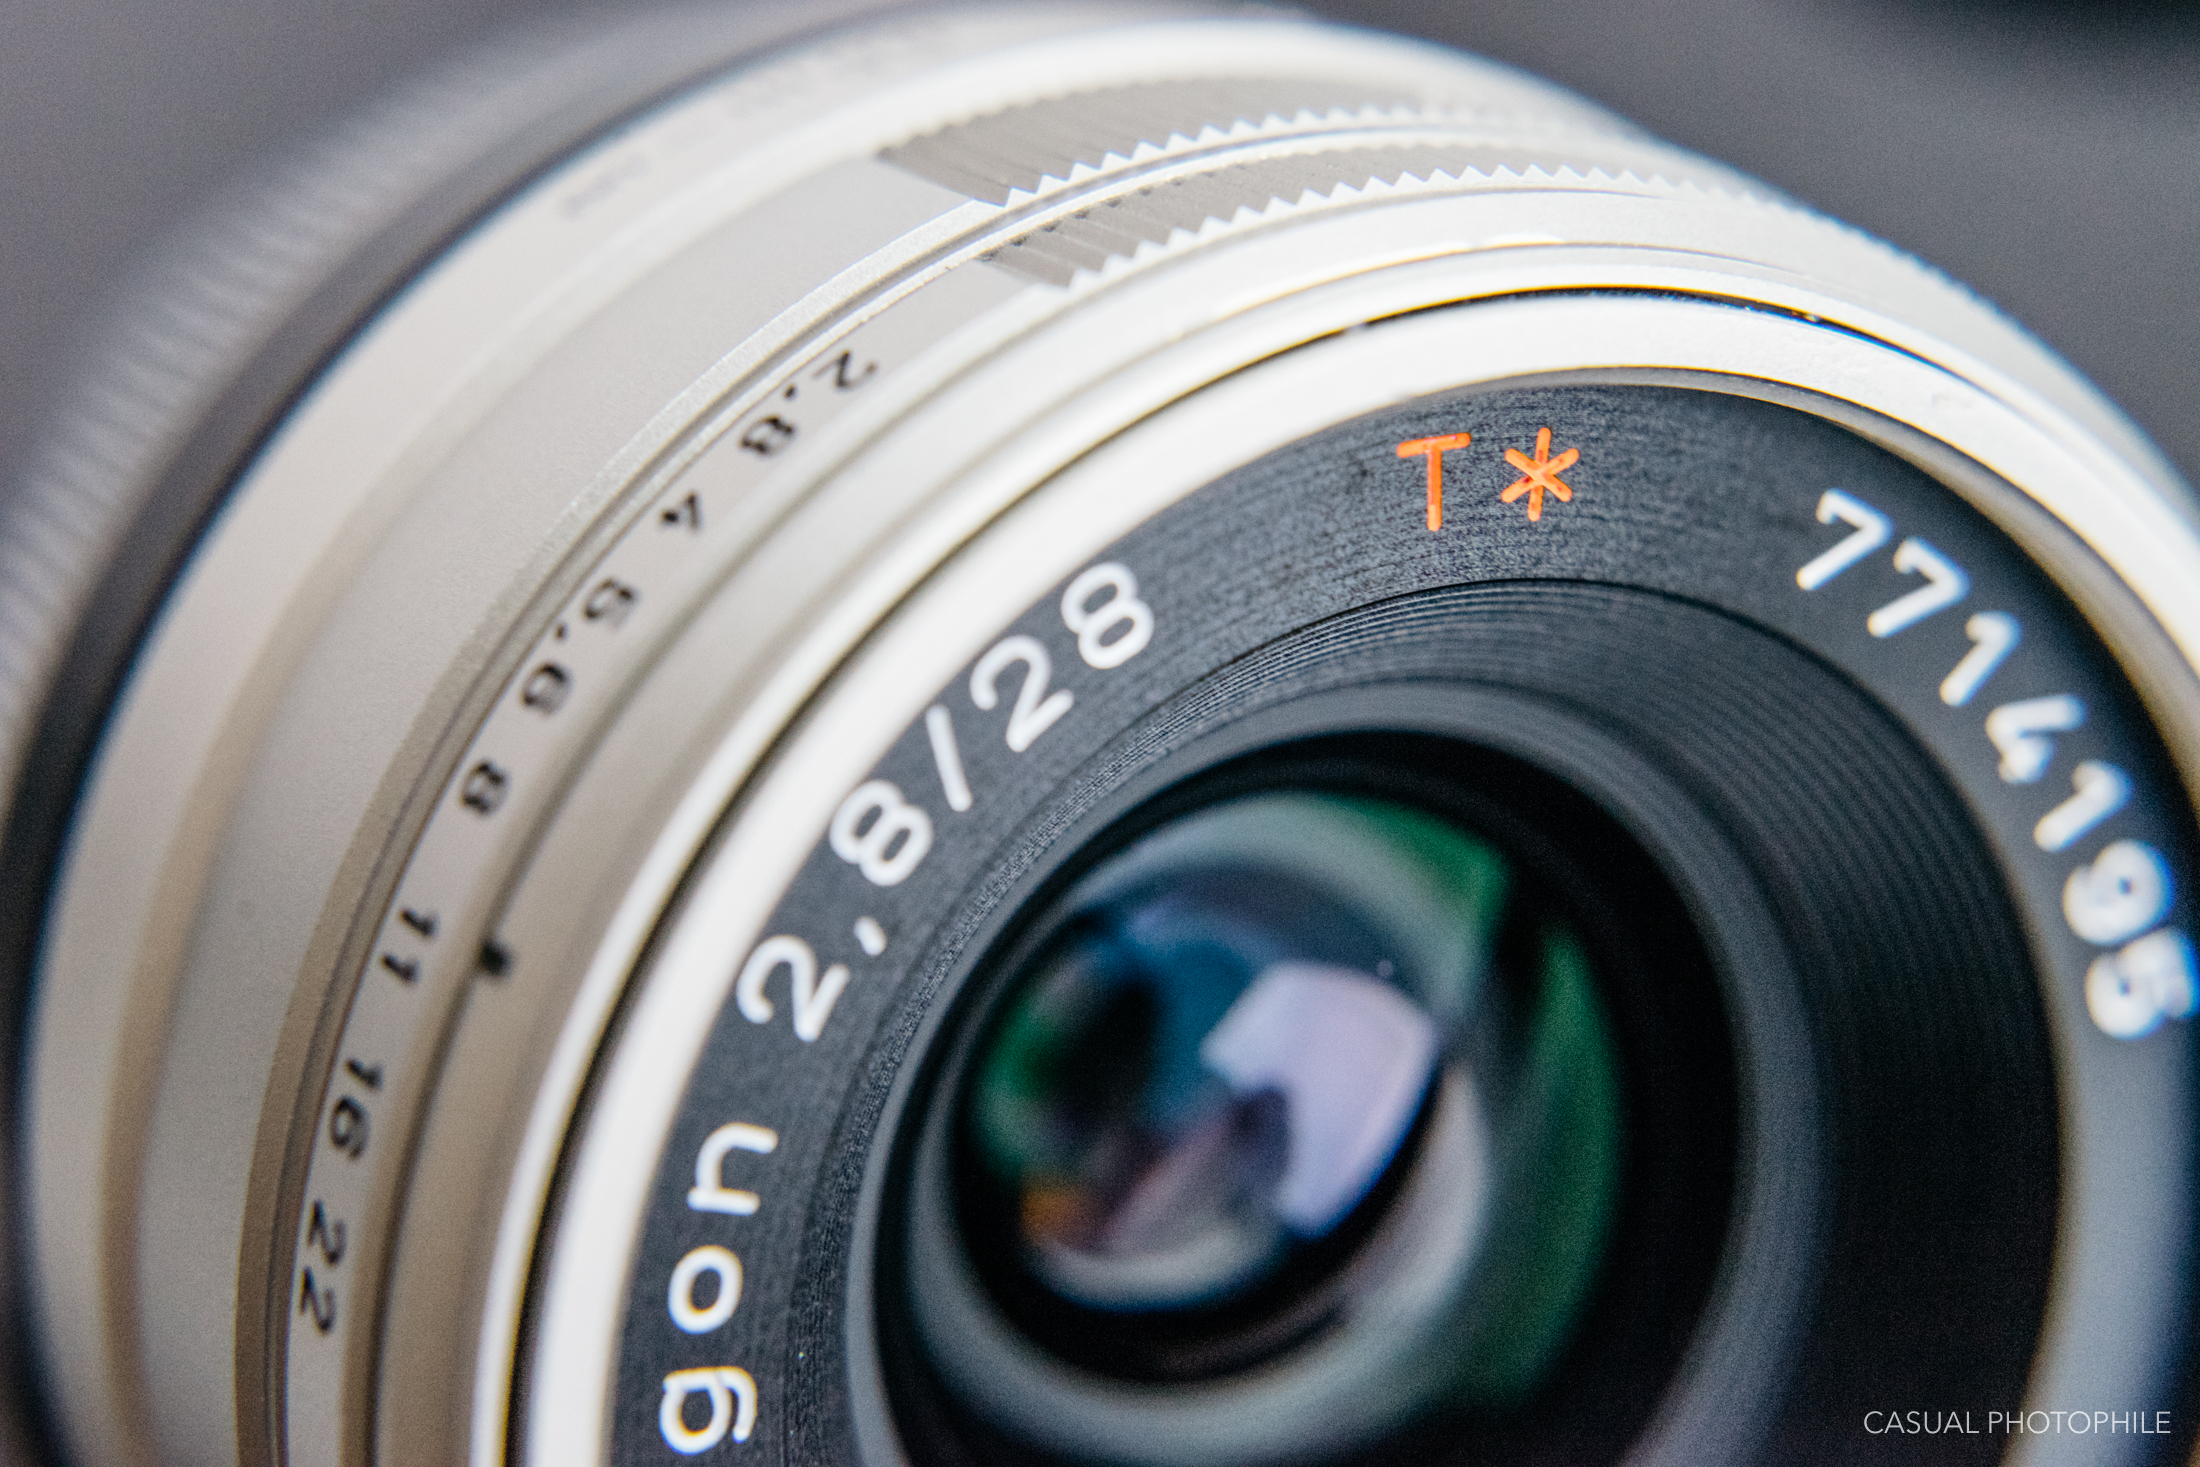 Carl Zeiss G Mount 28mm F/2 8 Biogon Lens Review – Another